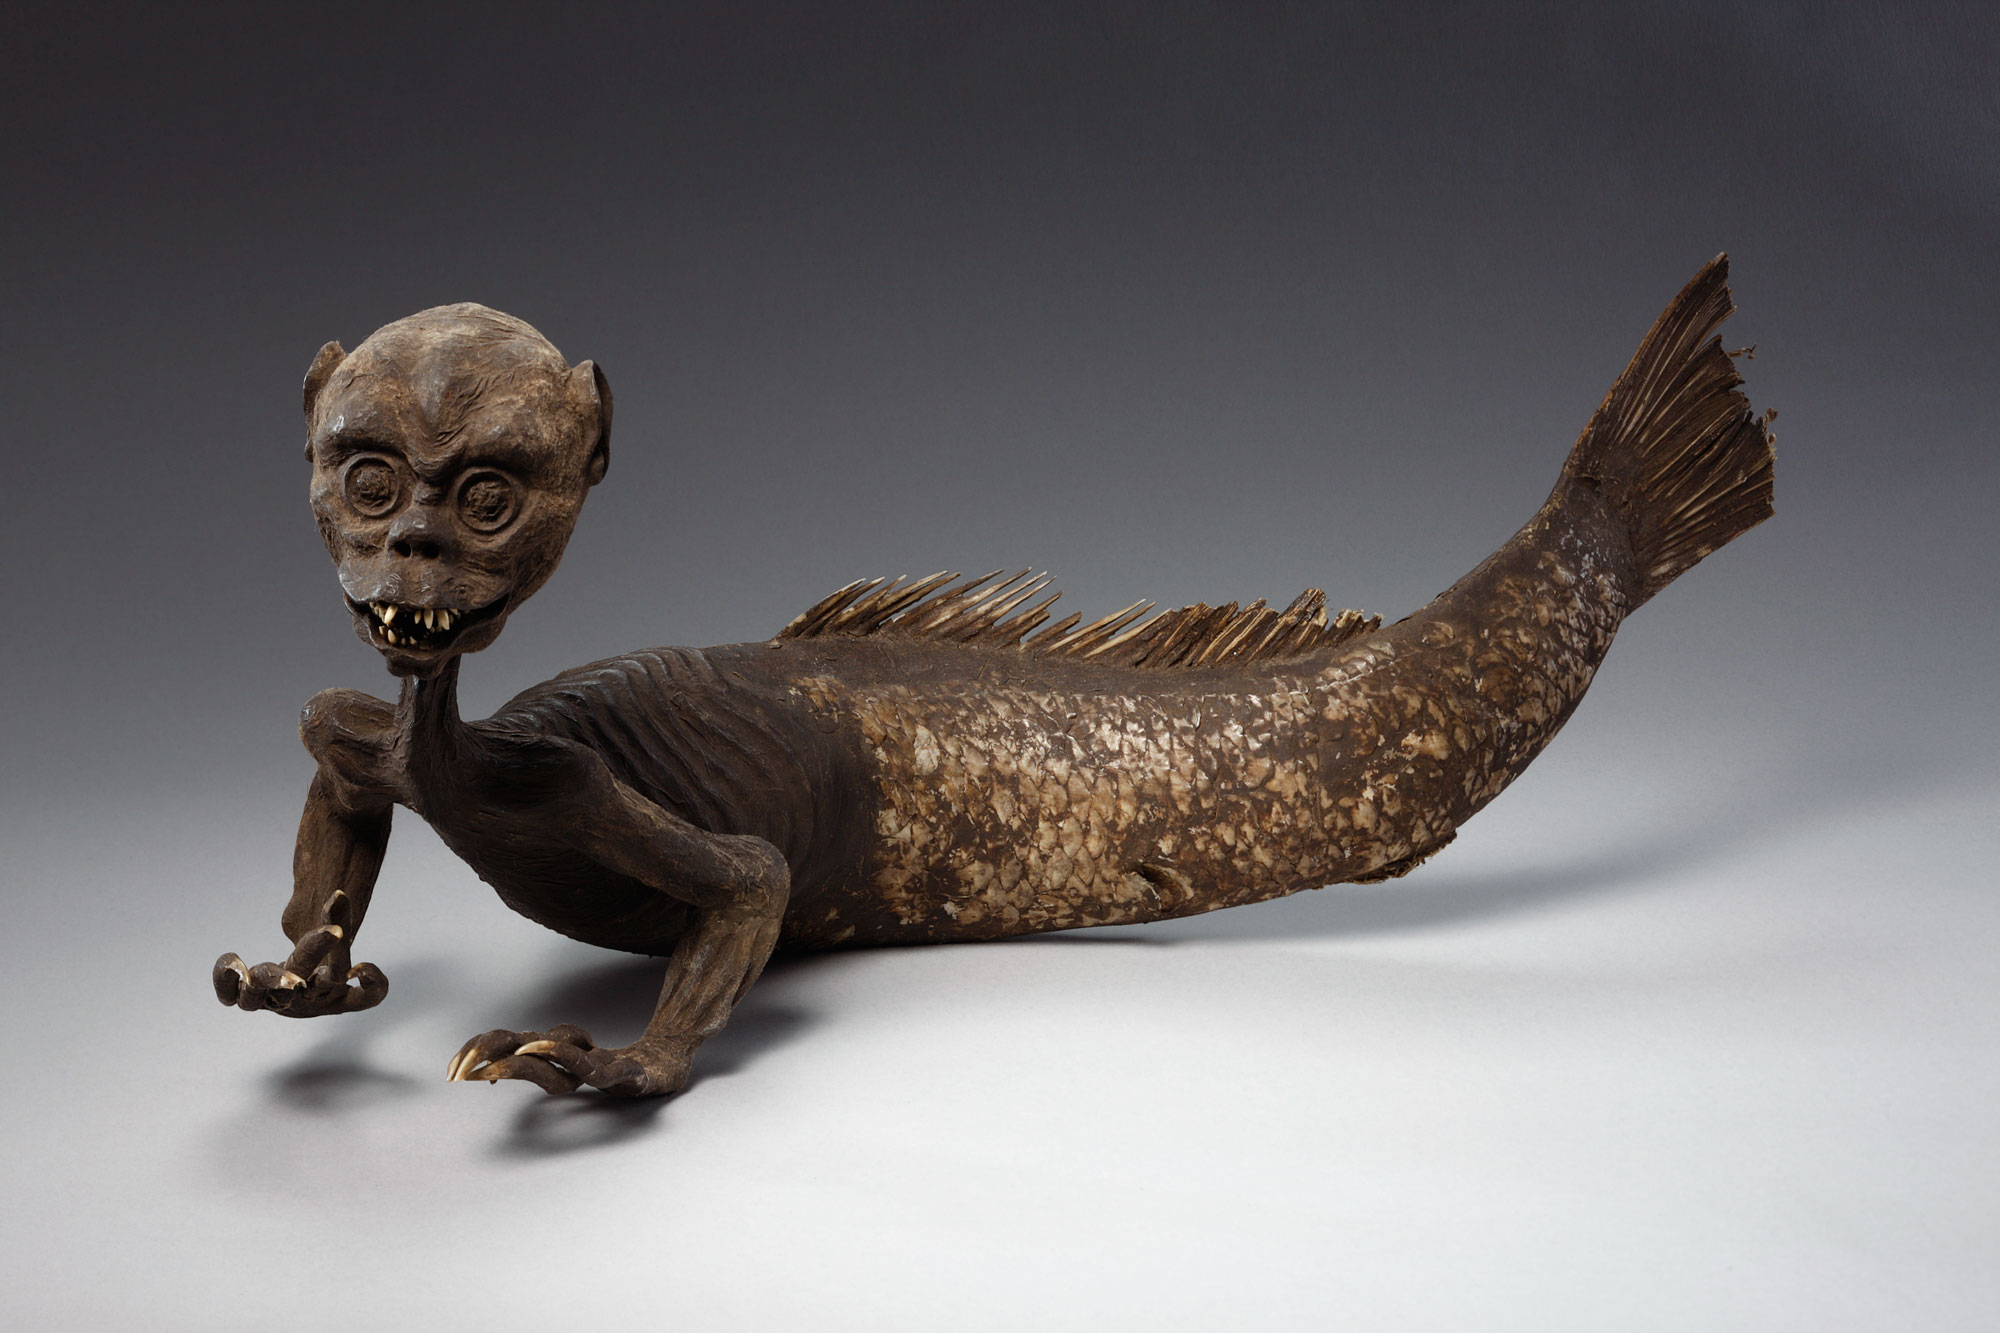 a creature with the tail of a fish and the head and torso of a small male, made to look like a real merman